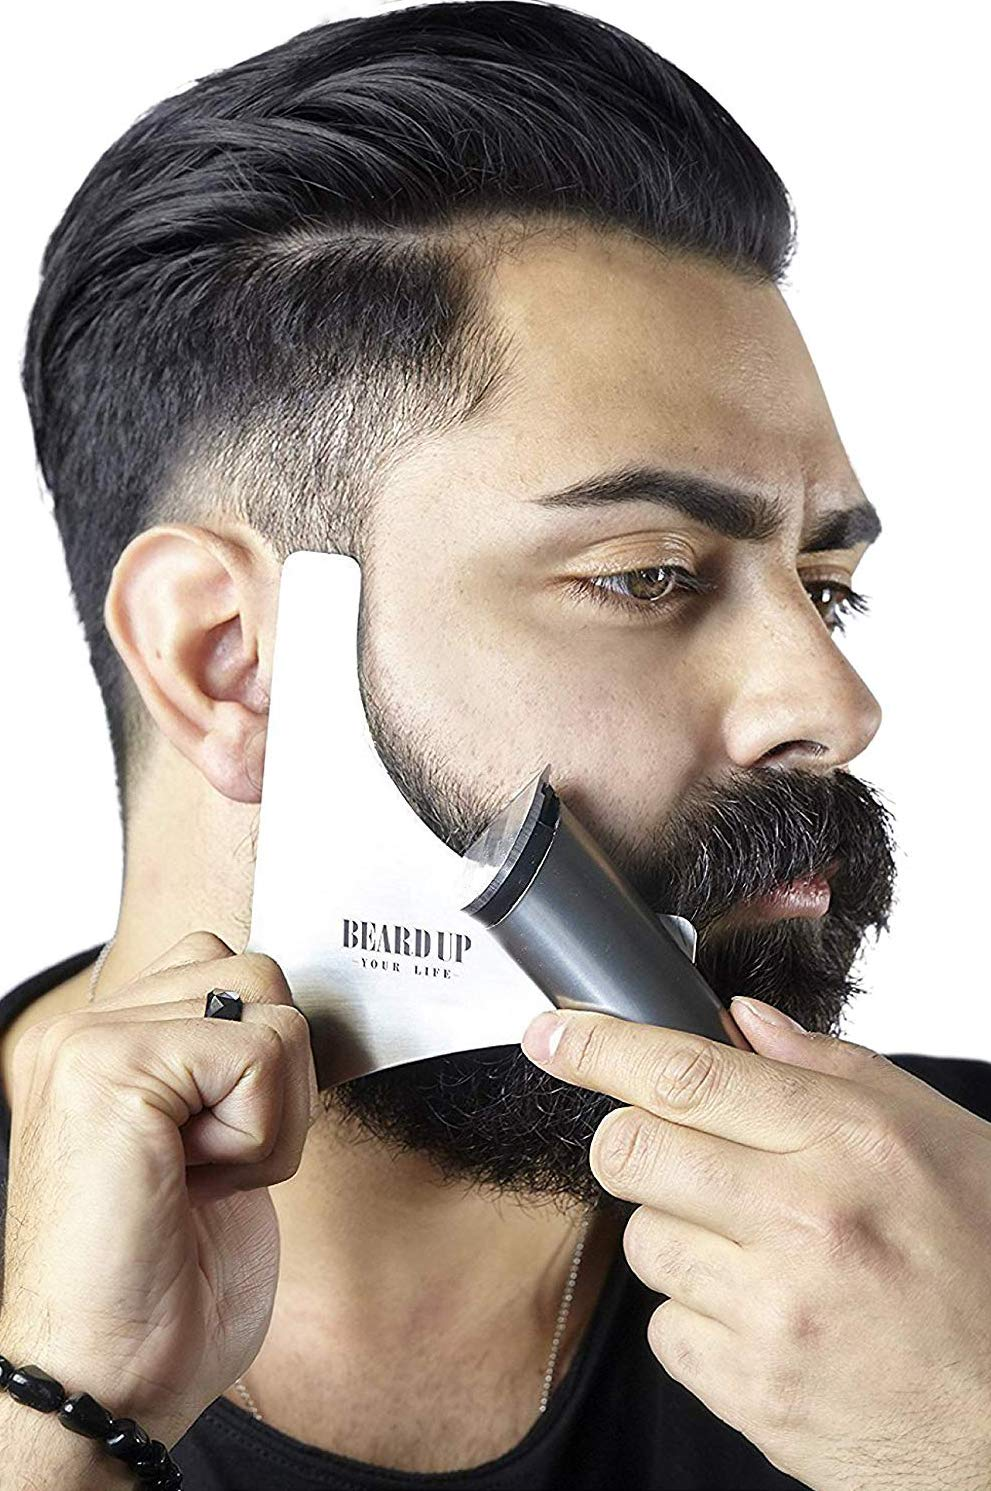 Premium Stainless Steel Stencil Beard Styling Made In Germany Shaving Template For Your Daily